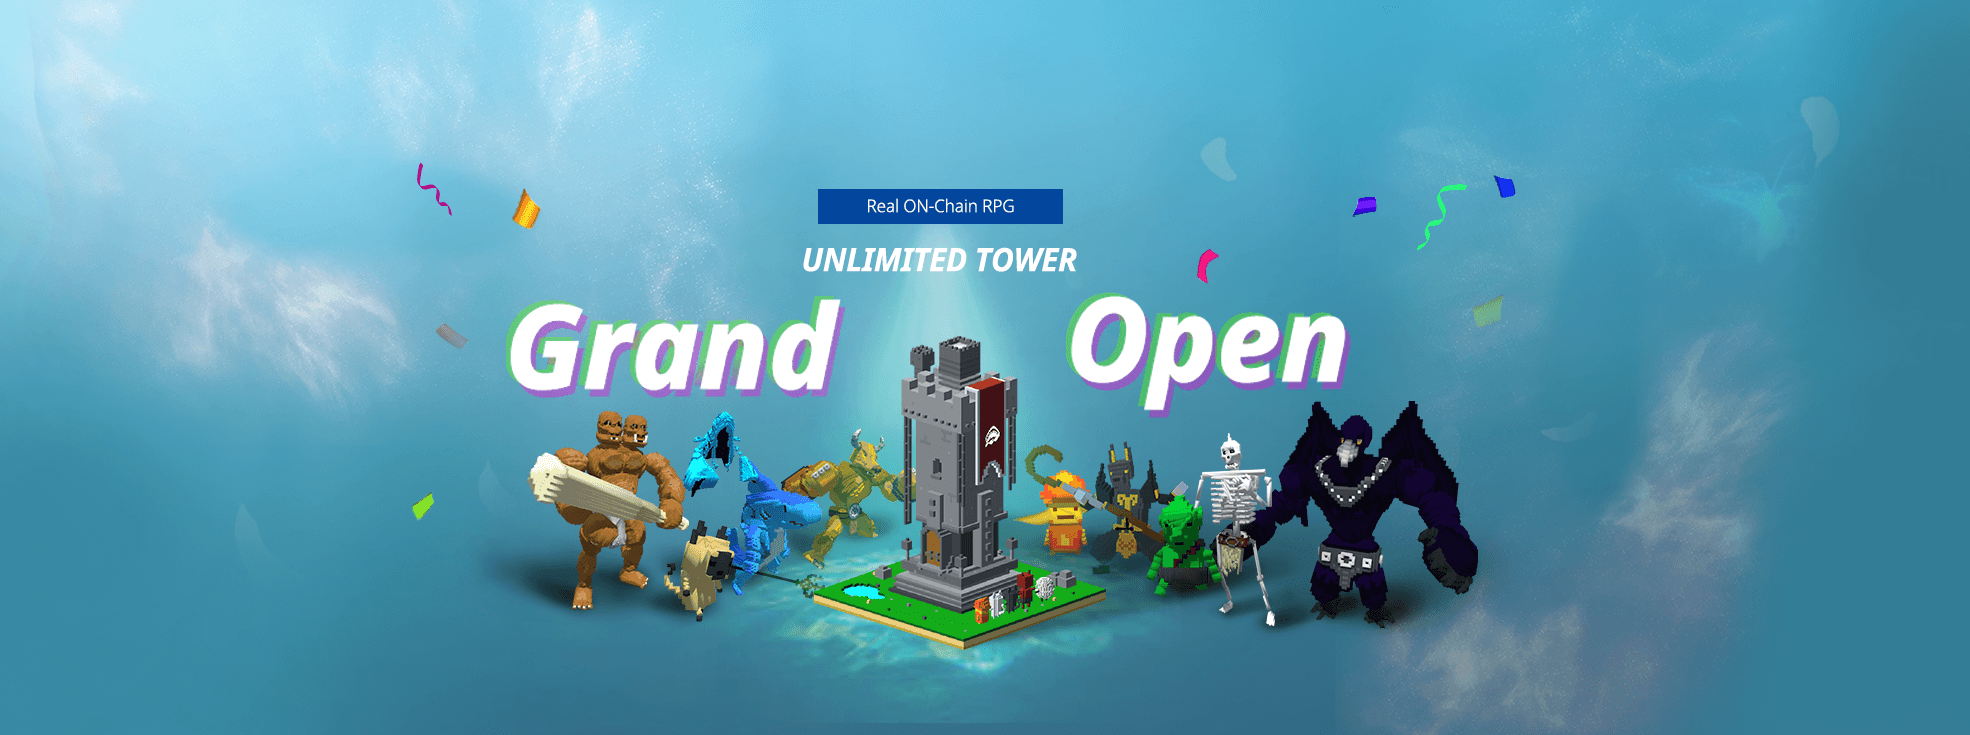 eos-dapp-Unlimited Tower